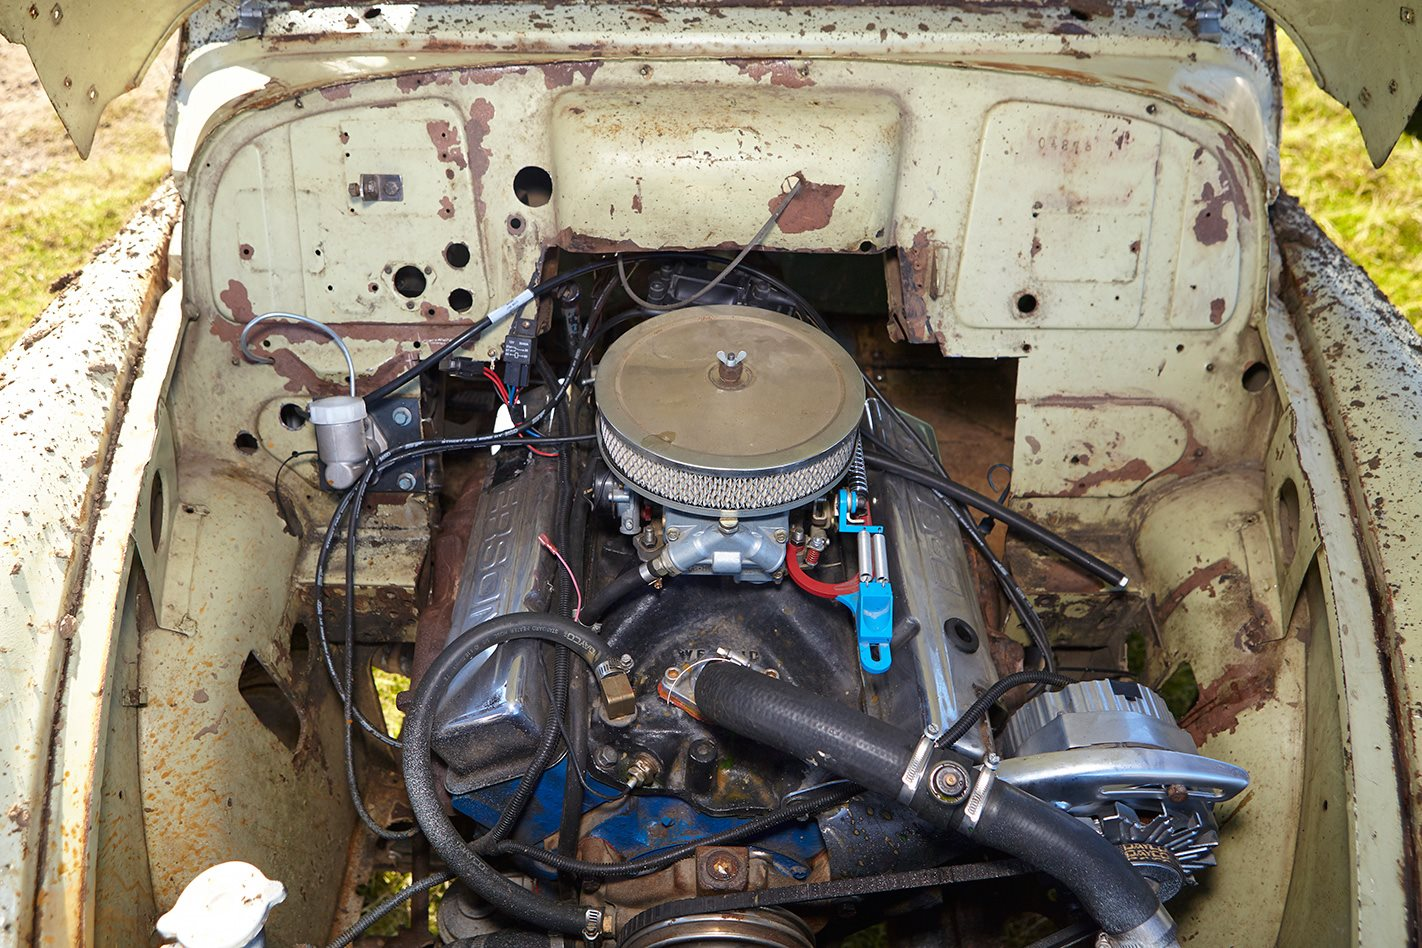 V8 MORRIS MINOR engine